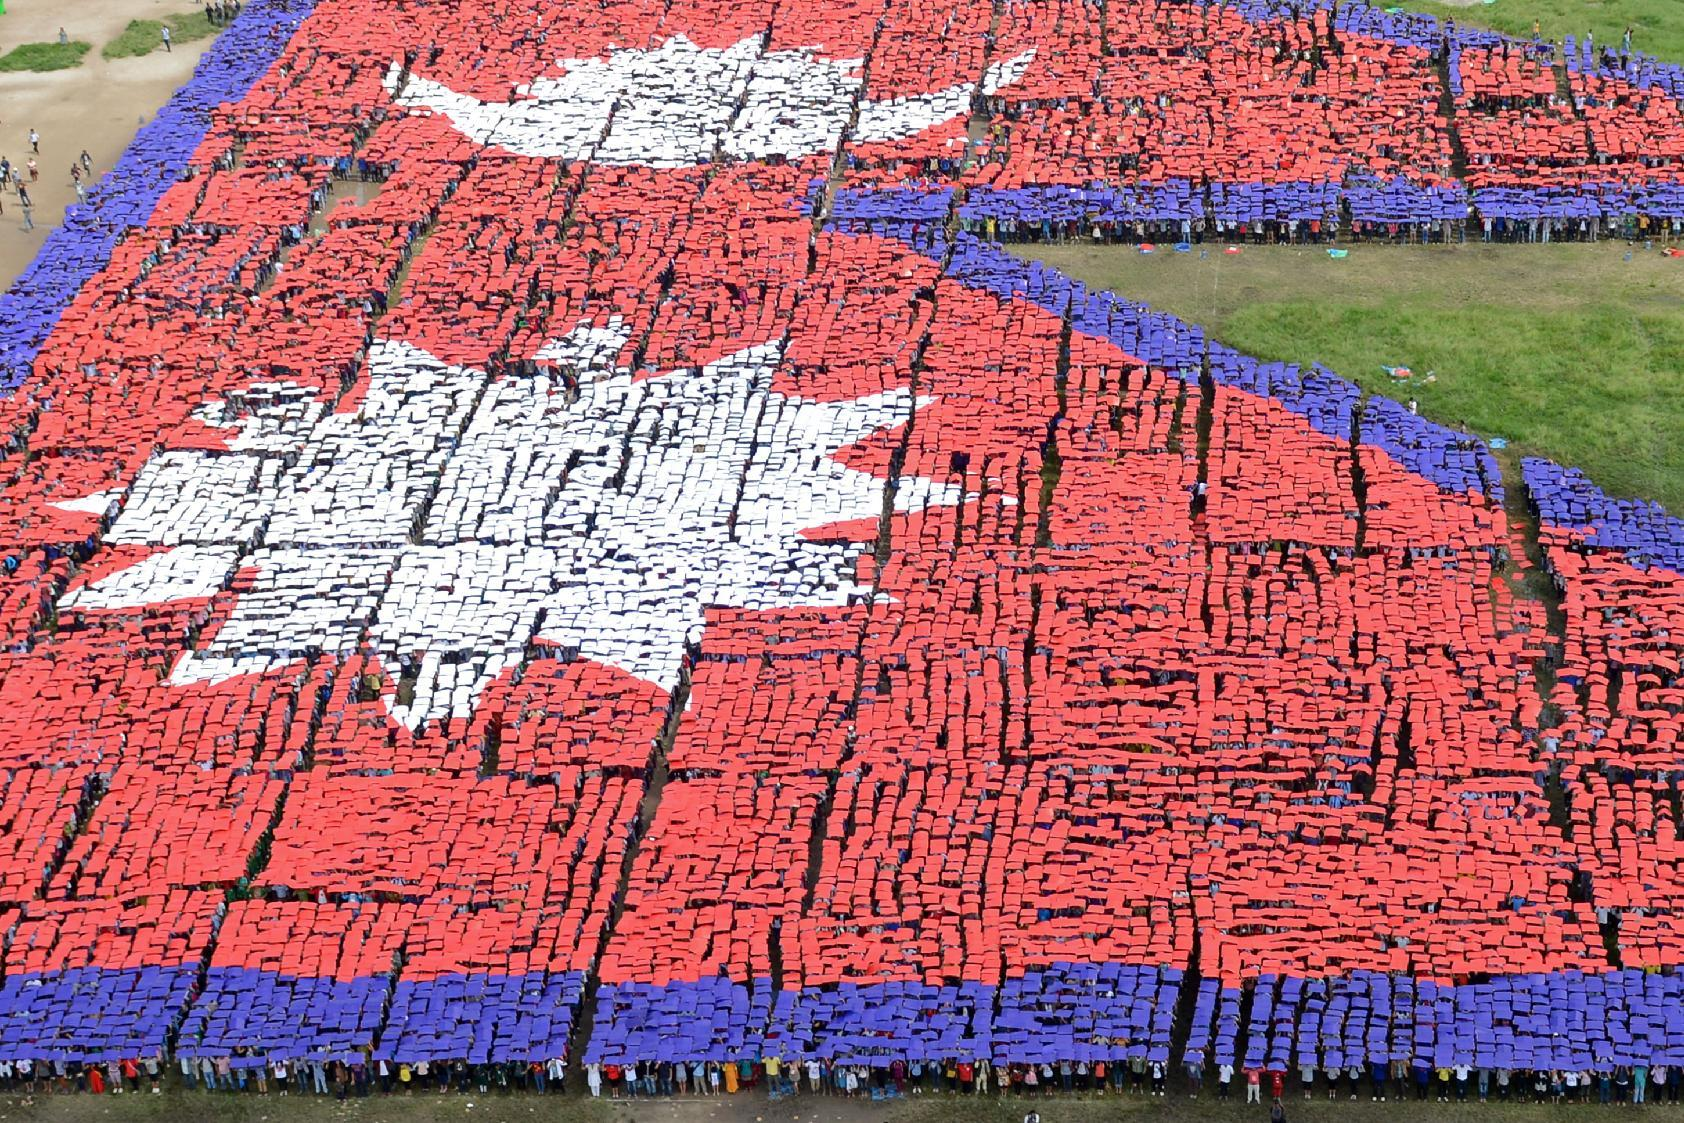 Nepalese attempt world's largest human flag record